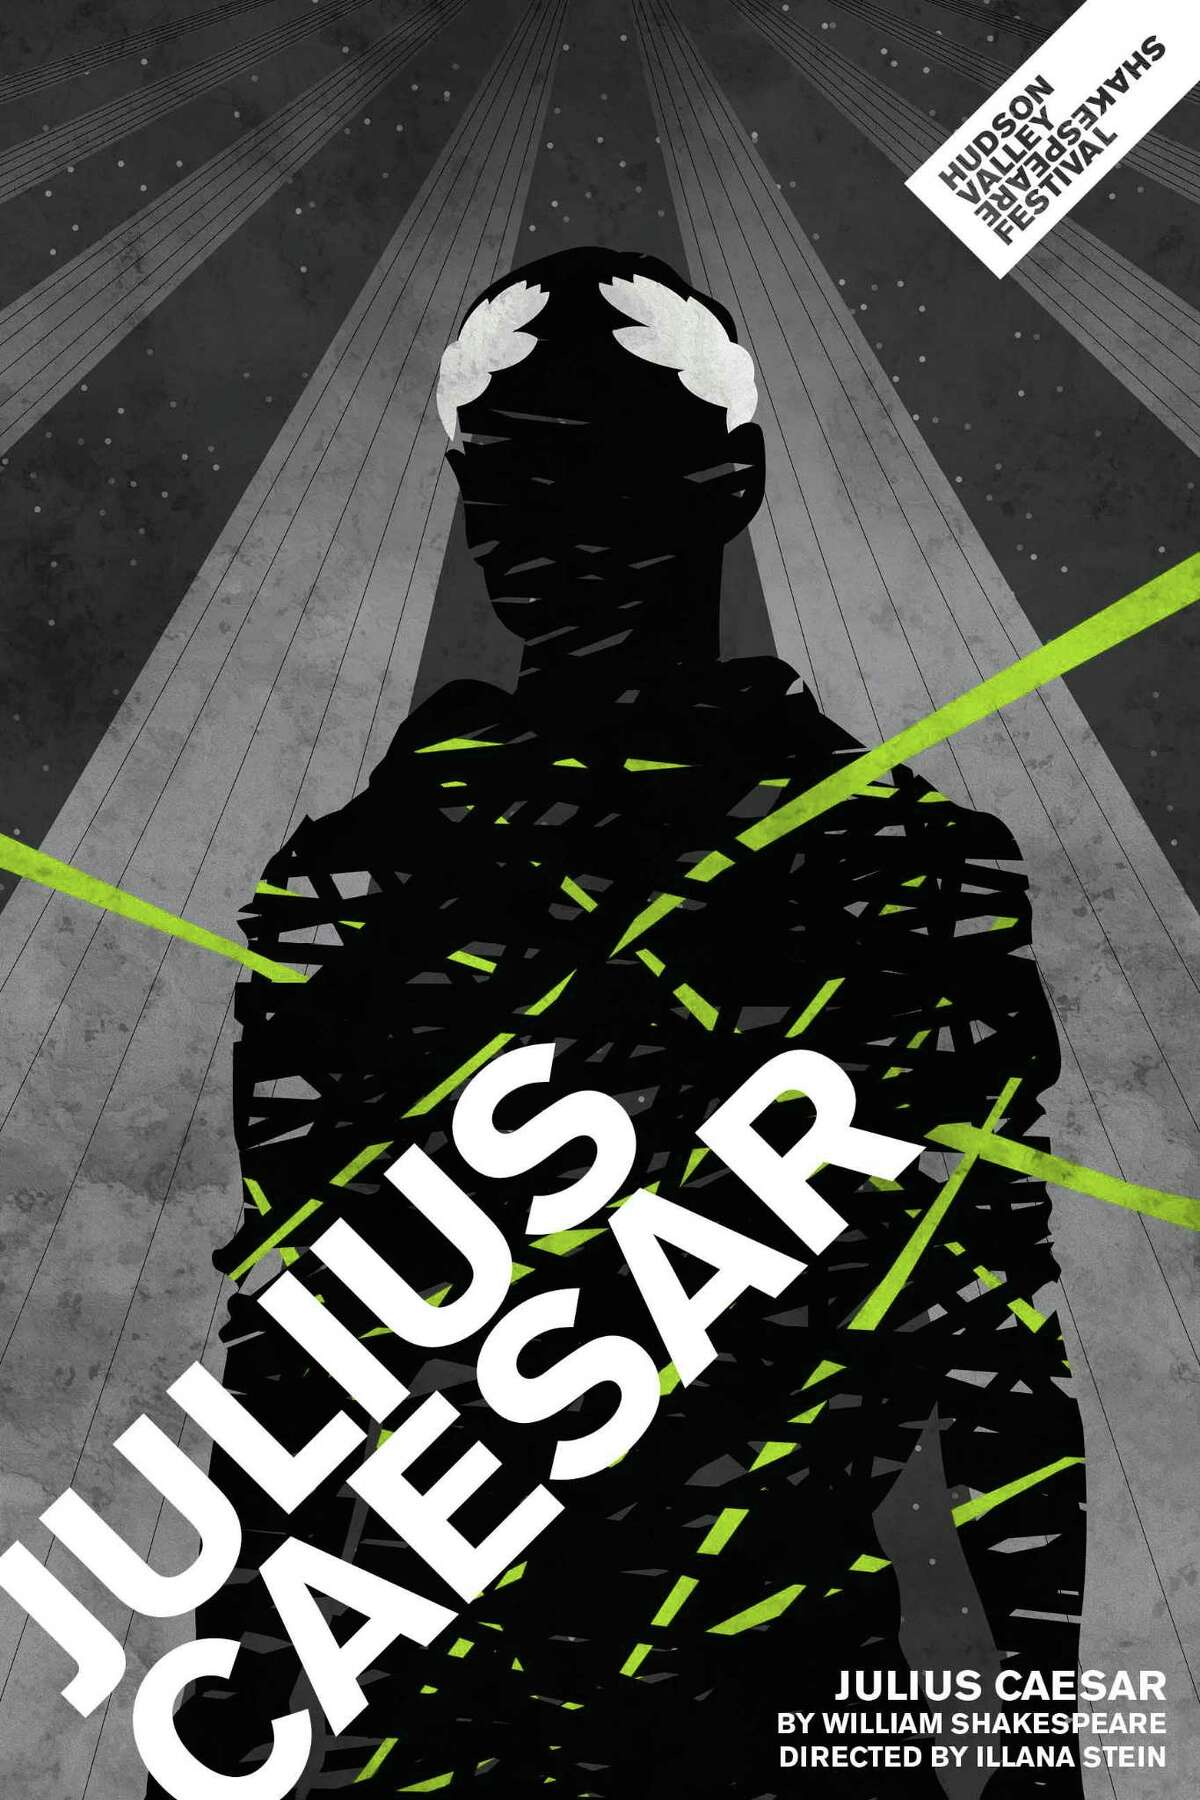 People's United Bank presents Shakespeare on the Green & Green Expo: Julius Caesar at The Ridgefield Playhouse, a free family event on Sunday, Aug. 4, at noon.